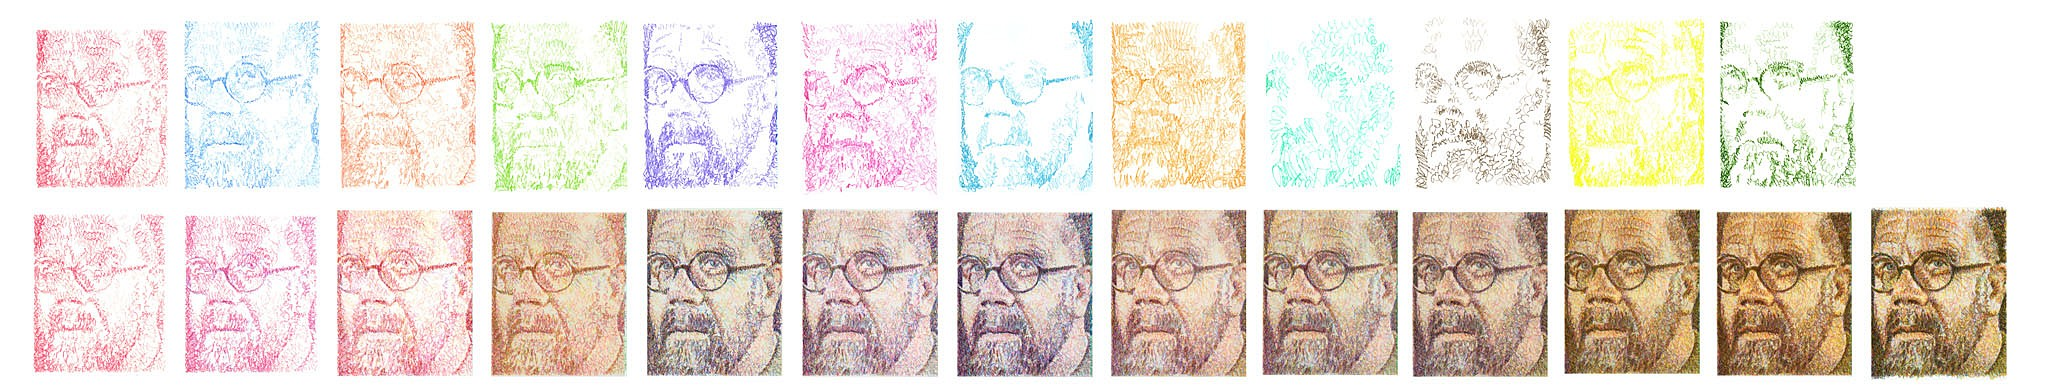 Displaying 18 gt images for chuck close self portrait 2000